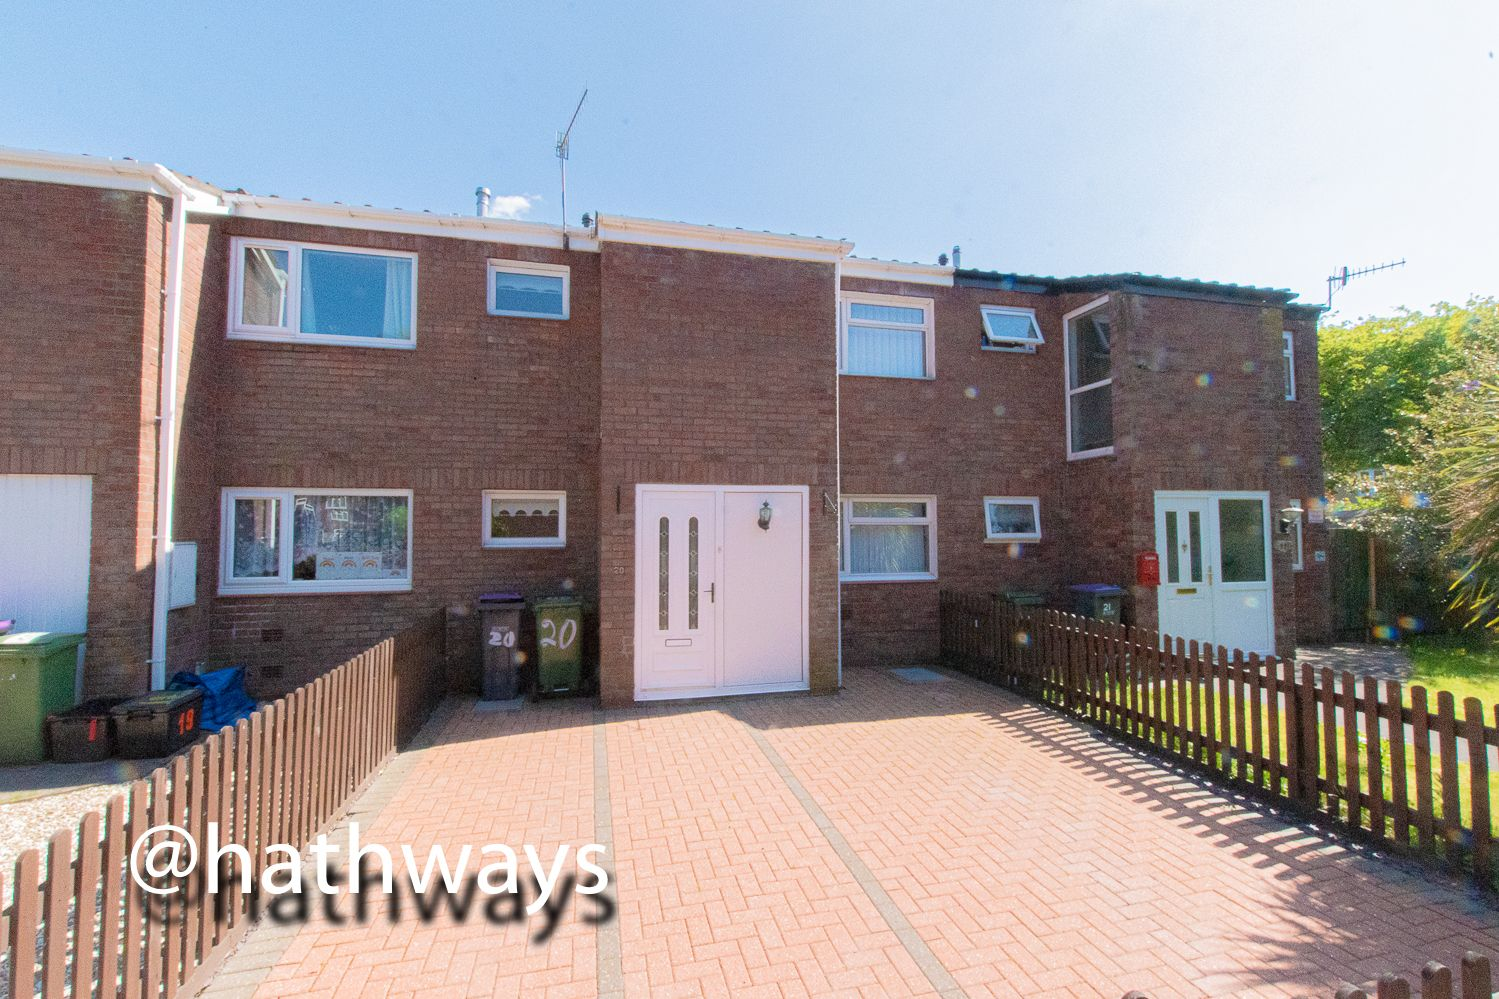 3 bed house for sale in Snowdon Court, NP44